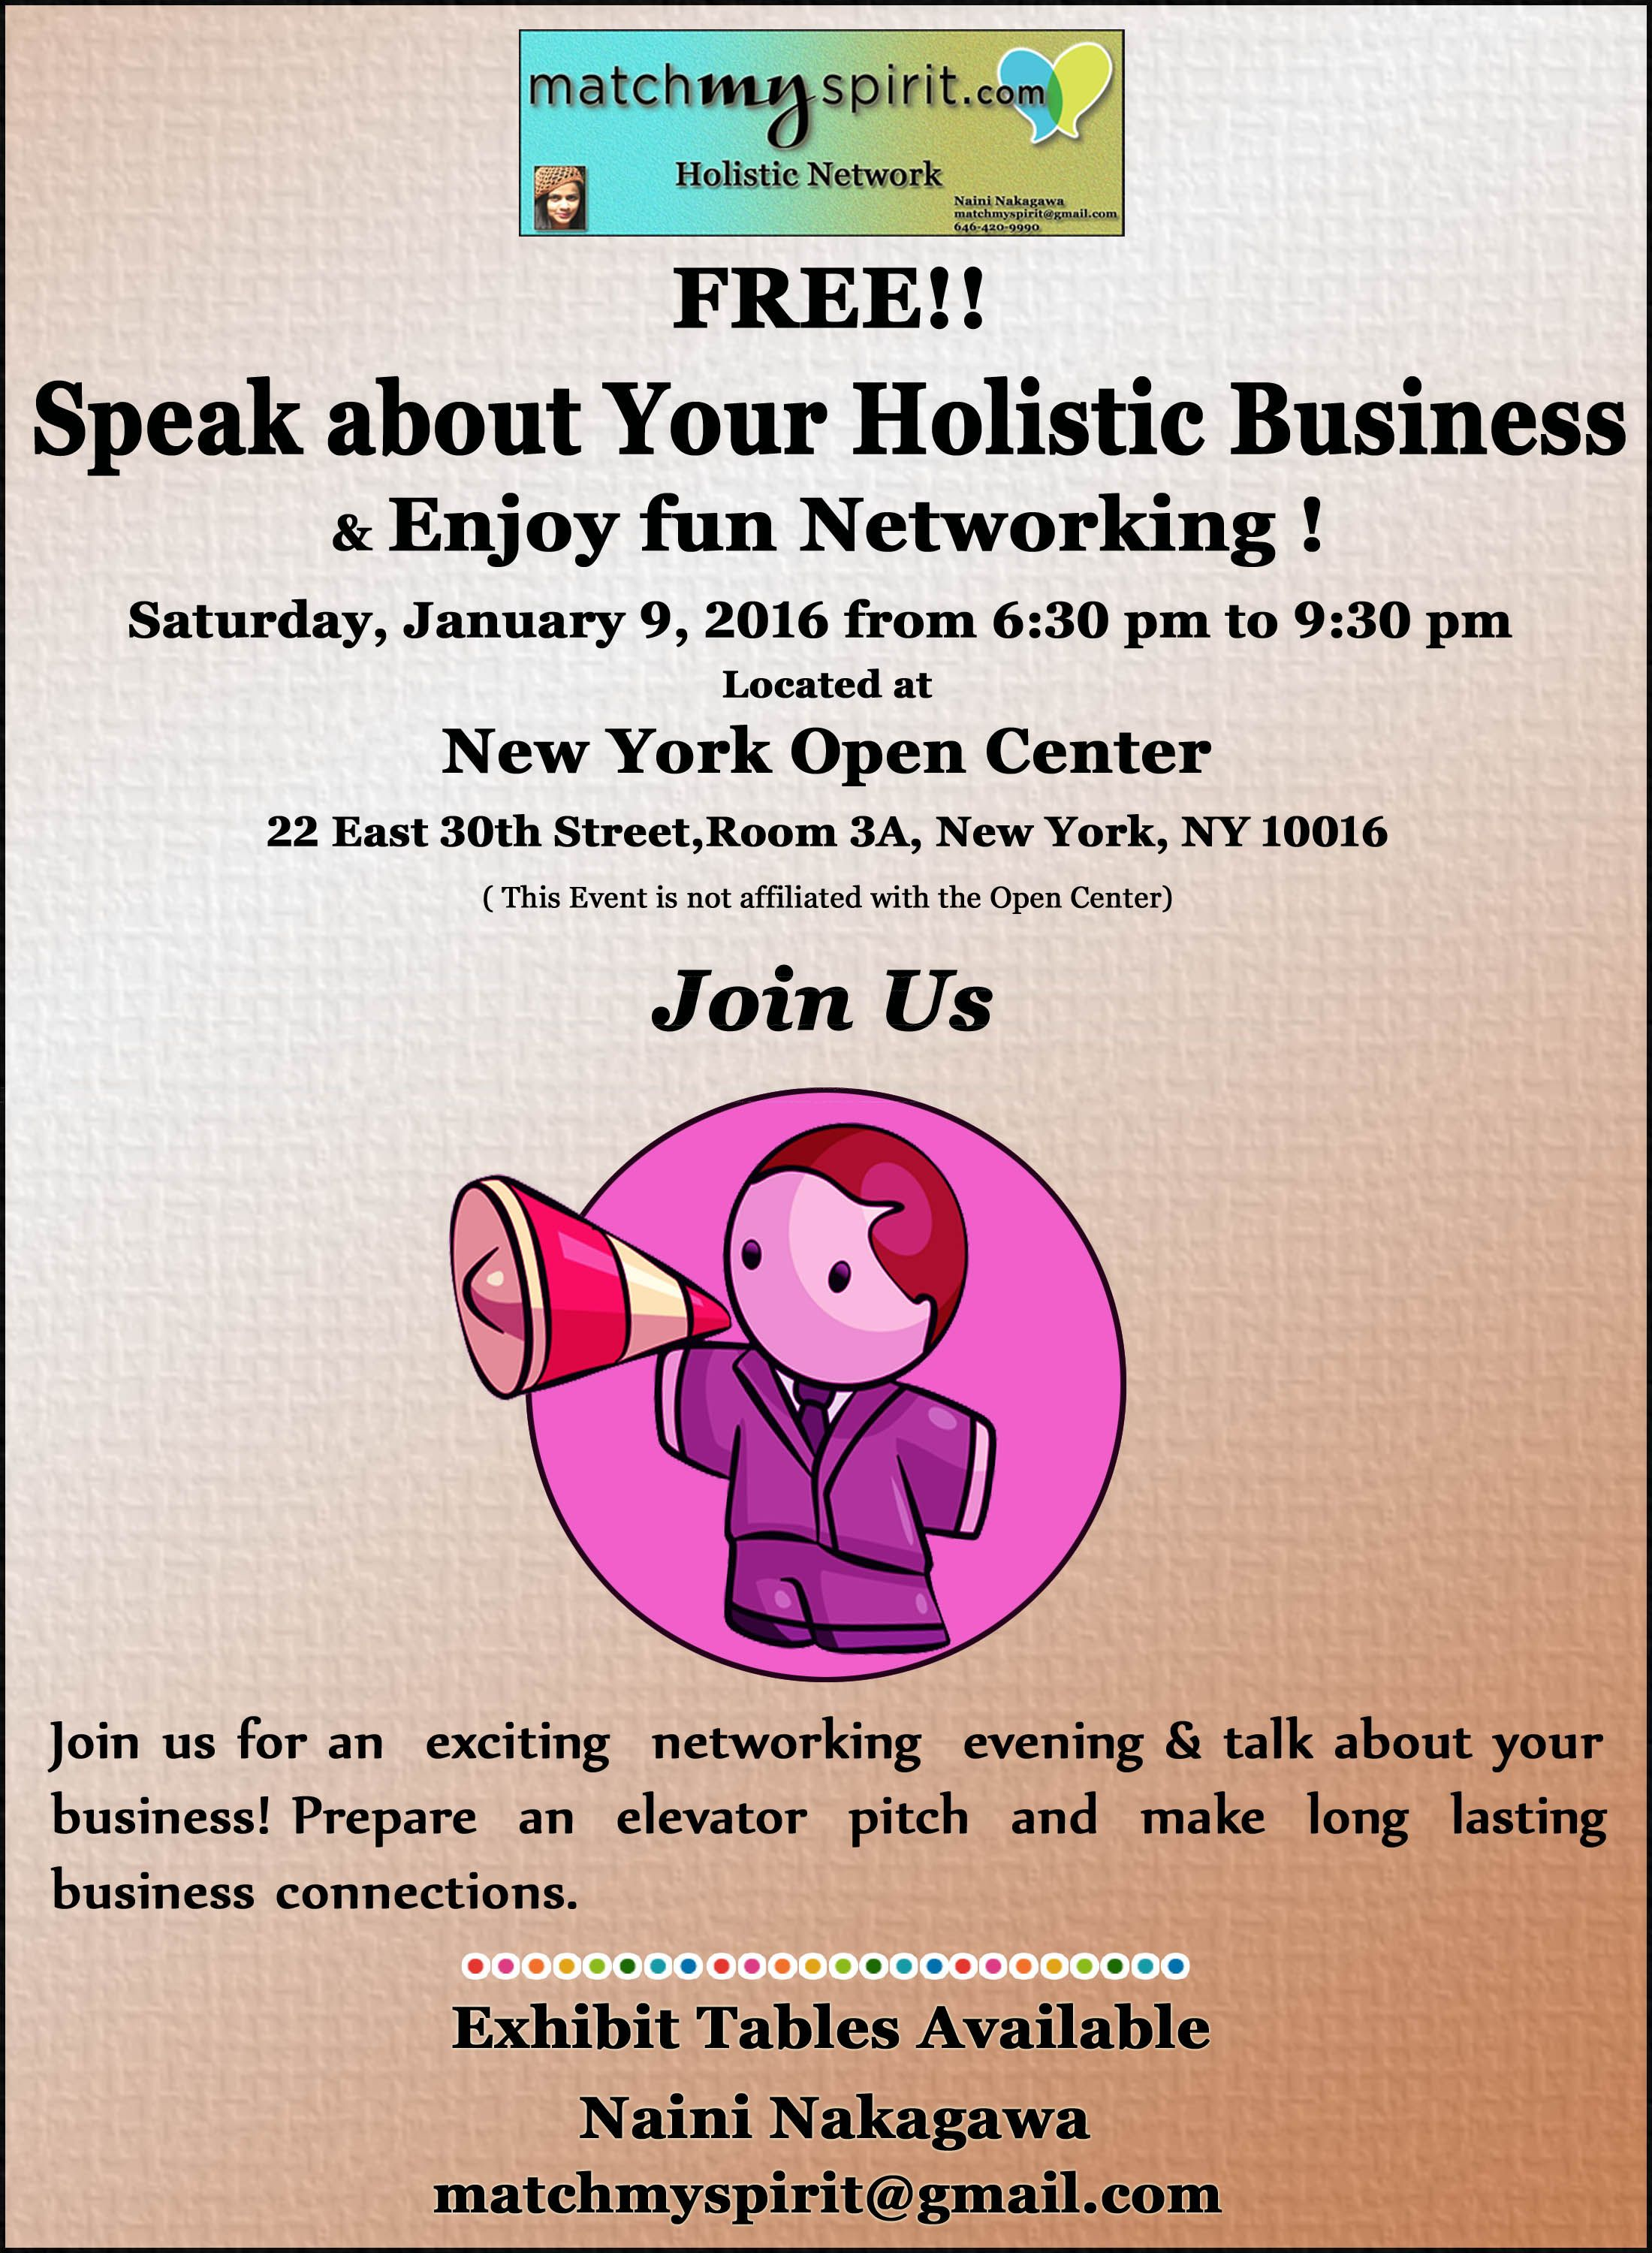 FREE!! Speak about Your Holistic Business & Enjoy fun Networking! Saturday, January 9, 2016 from 6:30 pm to 9:30 pm New York Open Center, 22 East 30th Street, New York, NY 10016  Register Online Here http://conta.cc/1O1IgtD